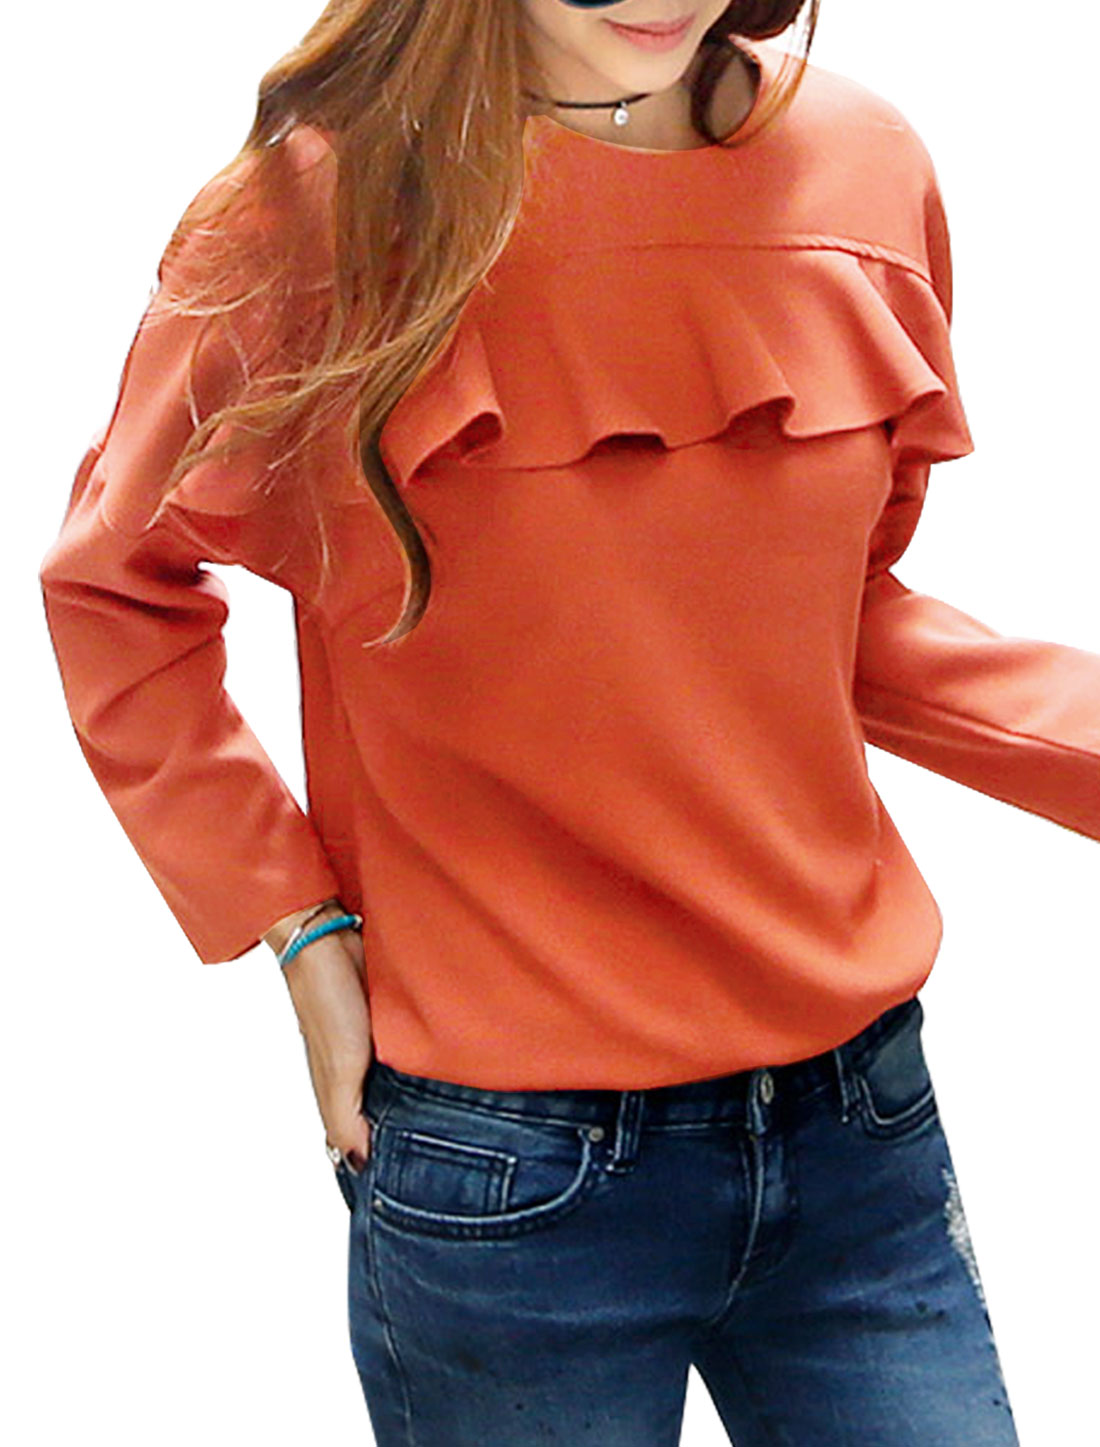 Women Crew Neck Long Batwing Sleeves Flouncing Trim Pullover Top Orange XS